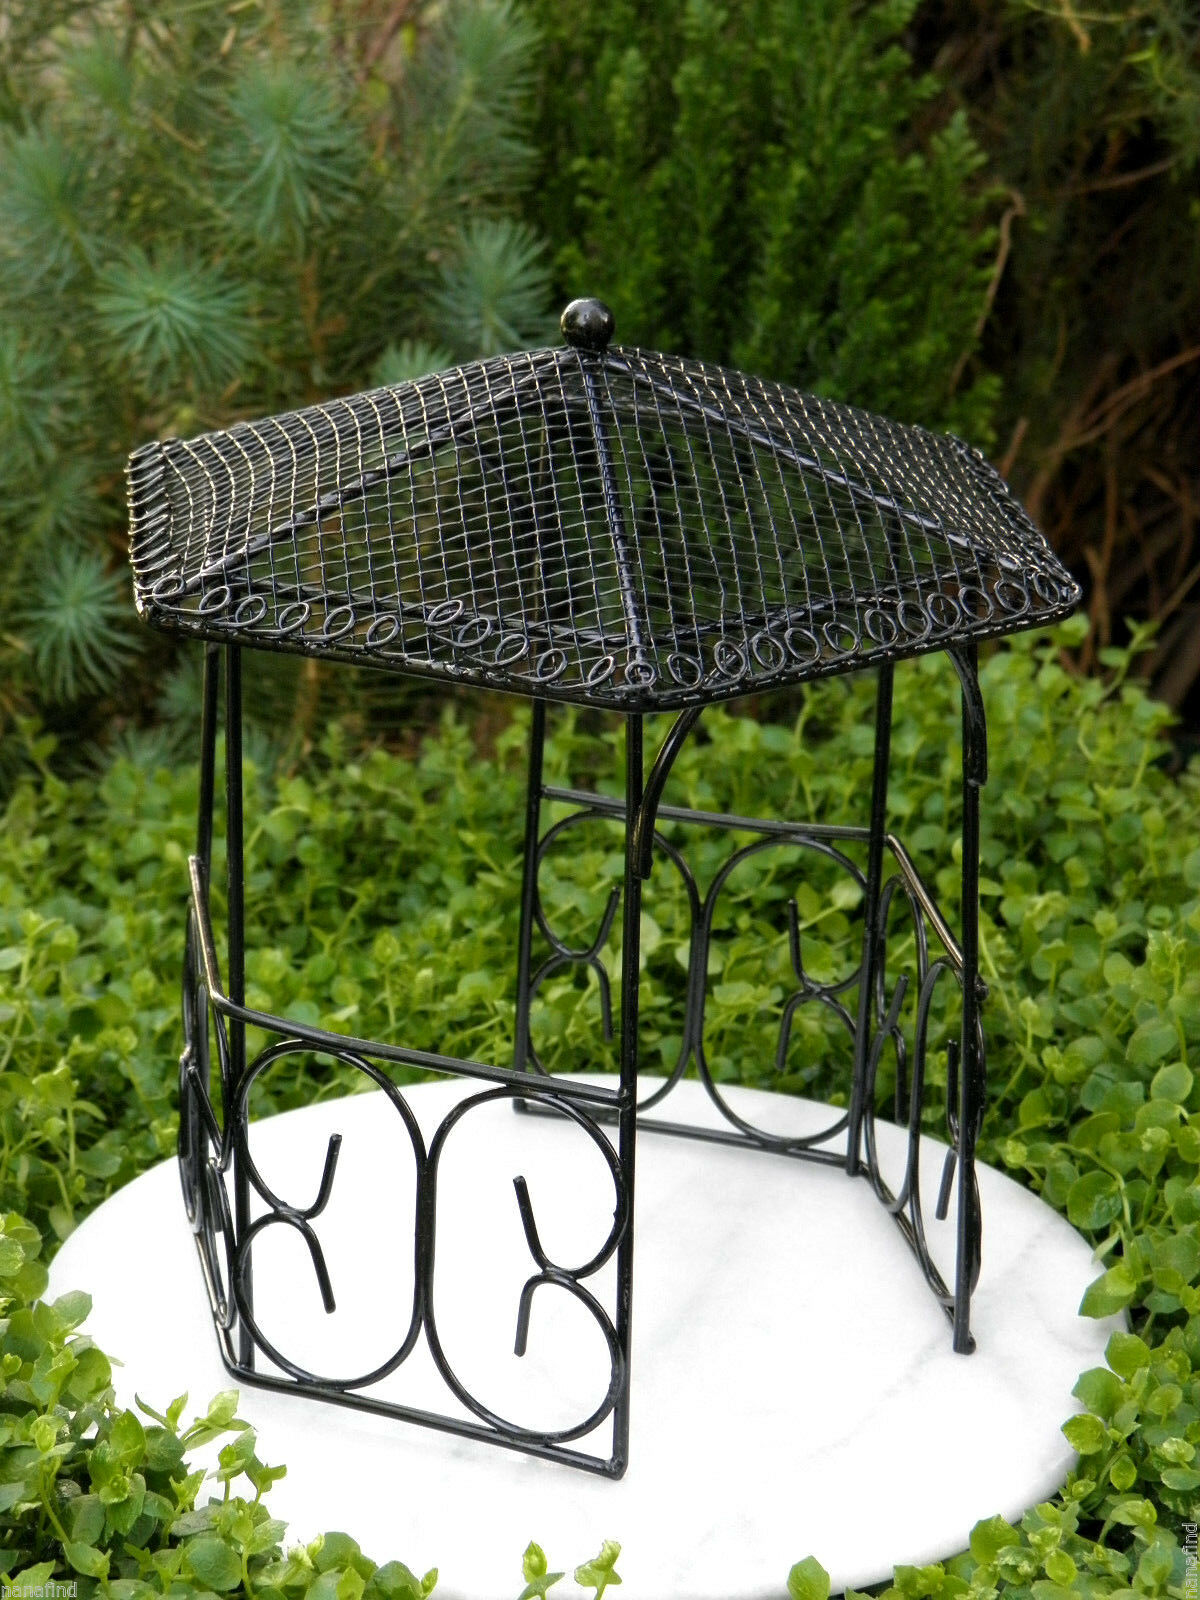 Touch of Nature Miniature Garden Gazebo 5-inch Black | eBay on miniature colonial furniture, cedar garden furniture, miniature nursery furniture, modern garden furniture, cheap garden furniture, nova garden furniture, better home and garden outdoor furniture, miniature cottage furniture, garden furniture set, miniature deck, fairies furniture, aluminum garden furniture, oasis garden patio furniture, miniature halloween furniture, garden treasure patio furniture, miniature lawn furniture, miniature garden accessories, miniature sewing room furniture, miniature restaurant furniture, fairy house furniture, miniature landscaping, miniature outdoor furniture and accessories, miniature glass furniture, miniature furniture shop, miniature mid century modern furniture, miniature furniture plans, better home and garden furniture, english garden furniture, garden furniture cushion, french garden furniture, home patio garden furniture, rustic garden furniture, white garden furniture, miniature fairy furniture, twig fairy furniture, miniature painted furniture, miniature gates,